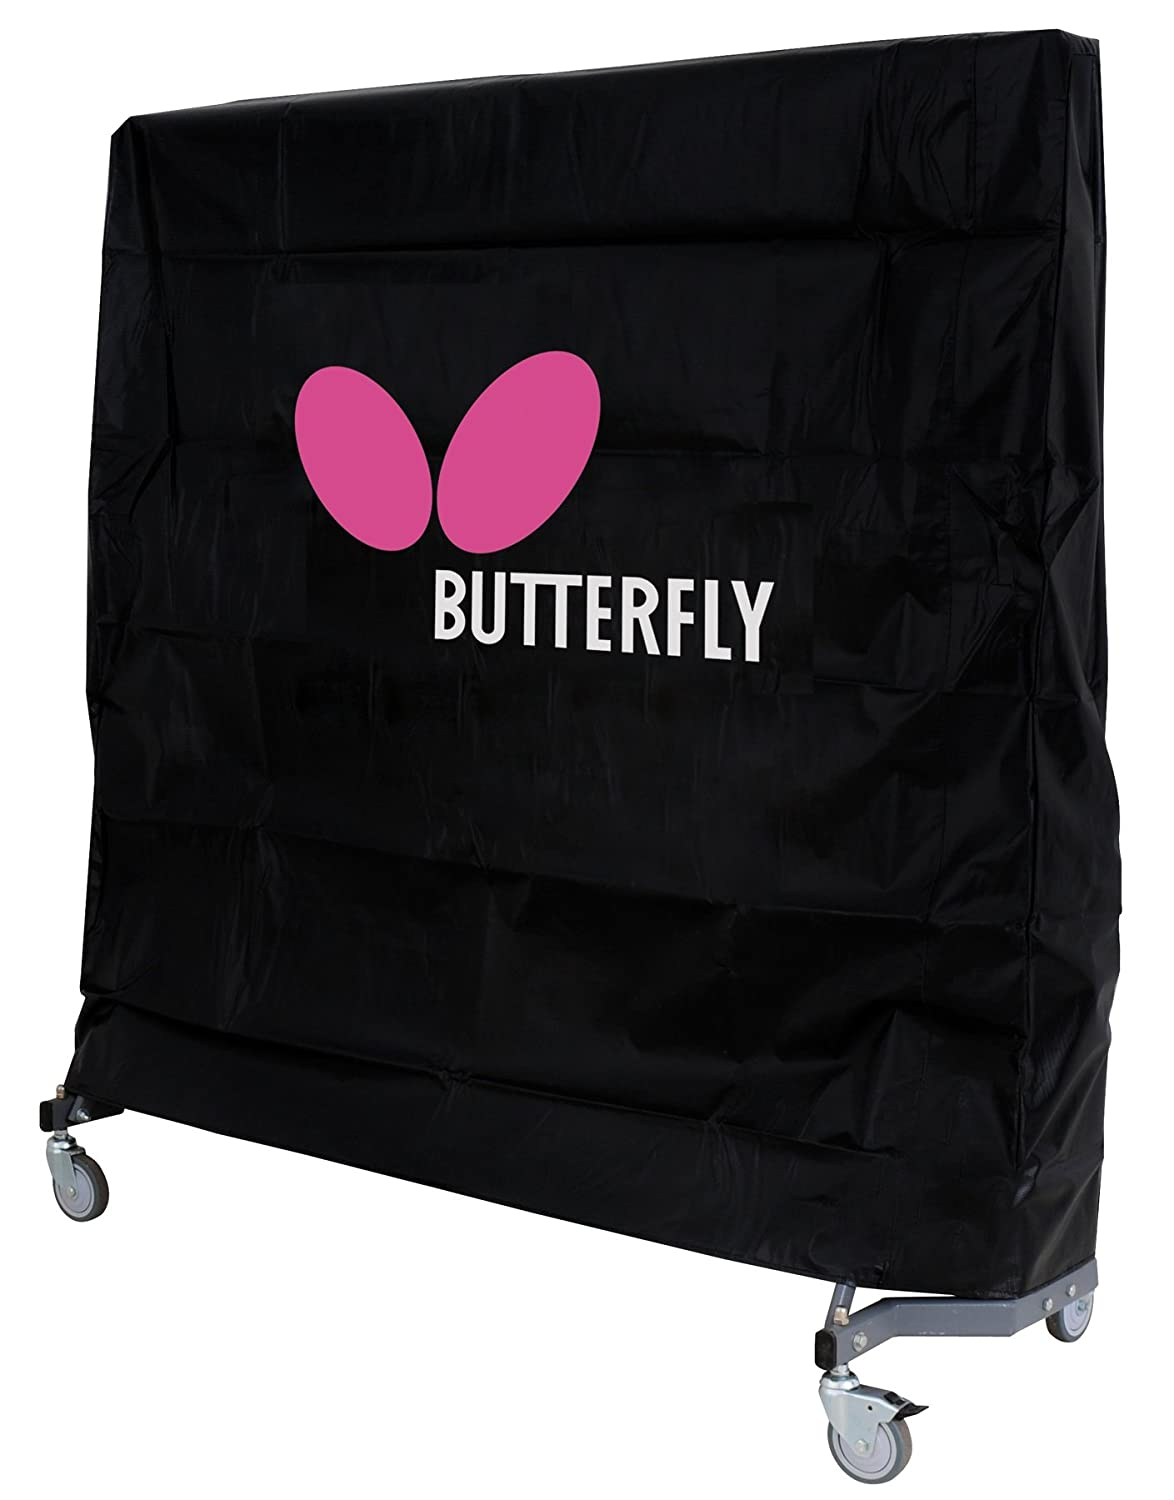 Butterfly TC1000 Table Tennis Table Cover   B0008G2VBC